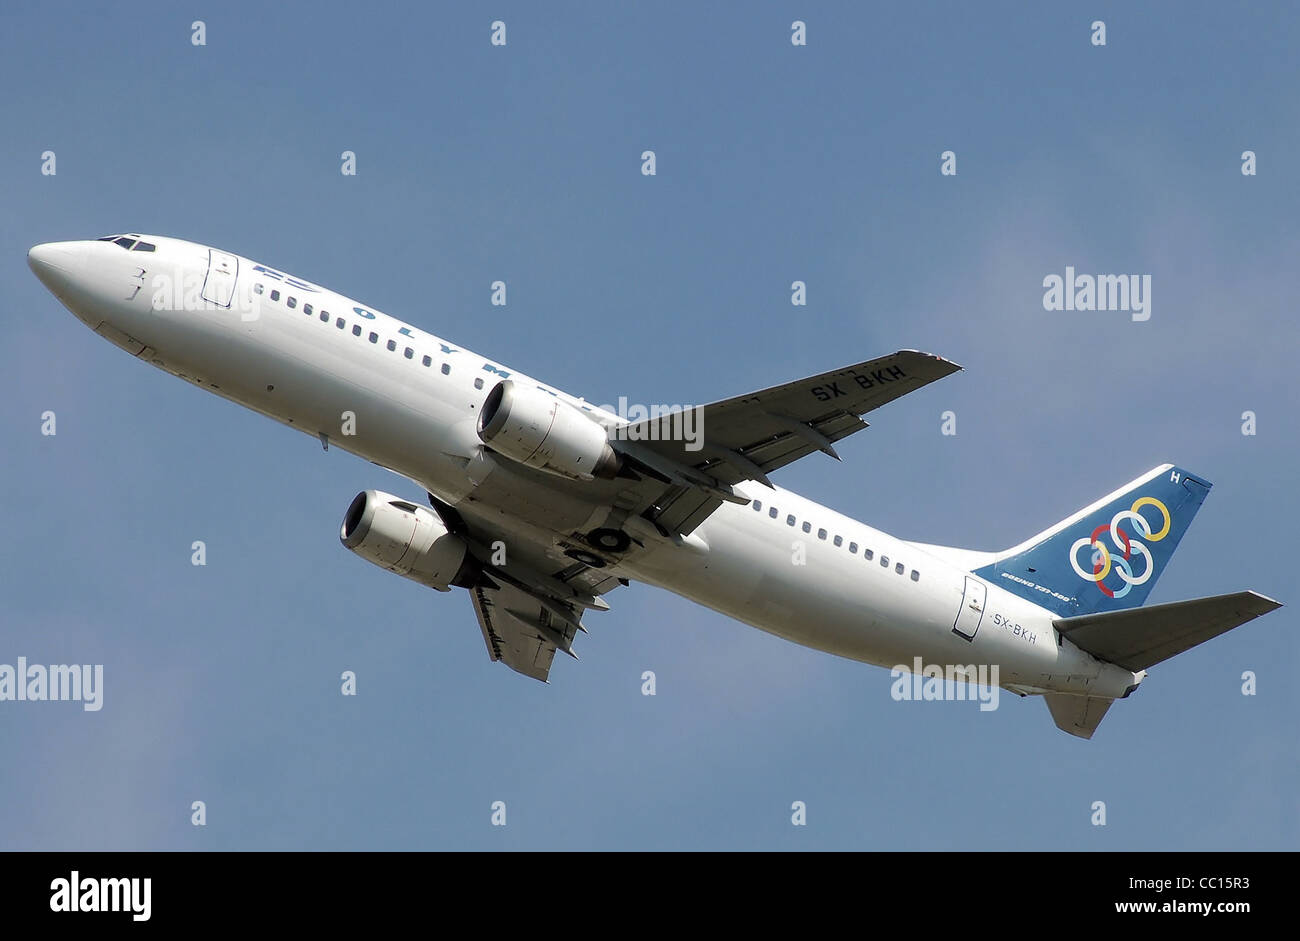 Olympic Airlines Boeing 737-400 (SX-BKH) landing at London Heathrow Airport. - Stock Image